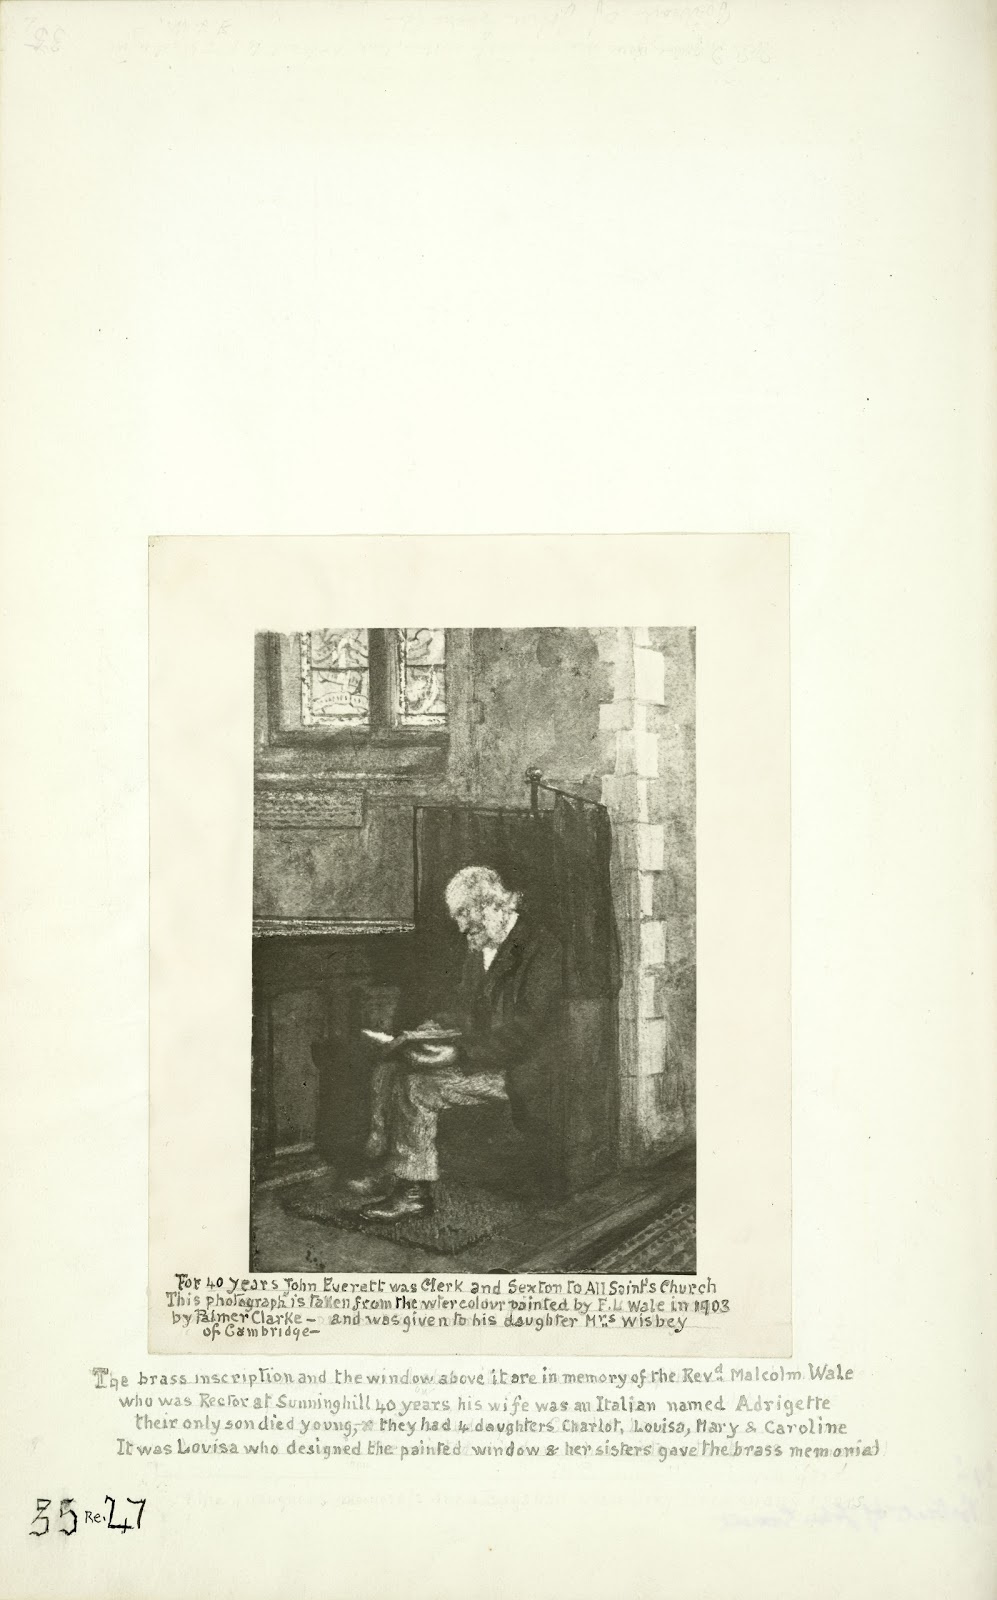 A Record of Shelford Parva by Fanny Wale P35 fo. 36v, page 35: A photograph of a painting of John Everett, Clerk and Sexton to All Saints by F.L. Wale in 1903, with note on the church window in memory of the Revd. Malcolm Wale. [not in photographic copy]